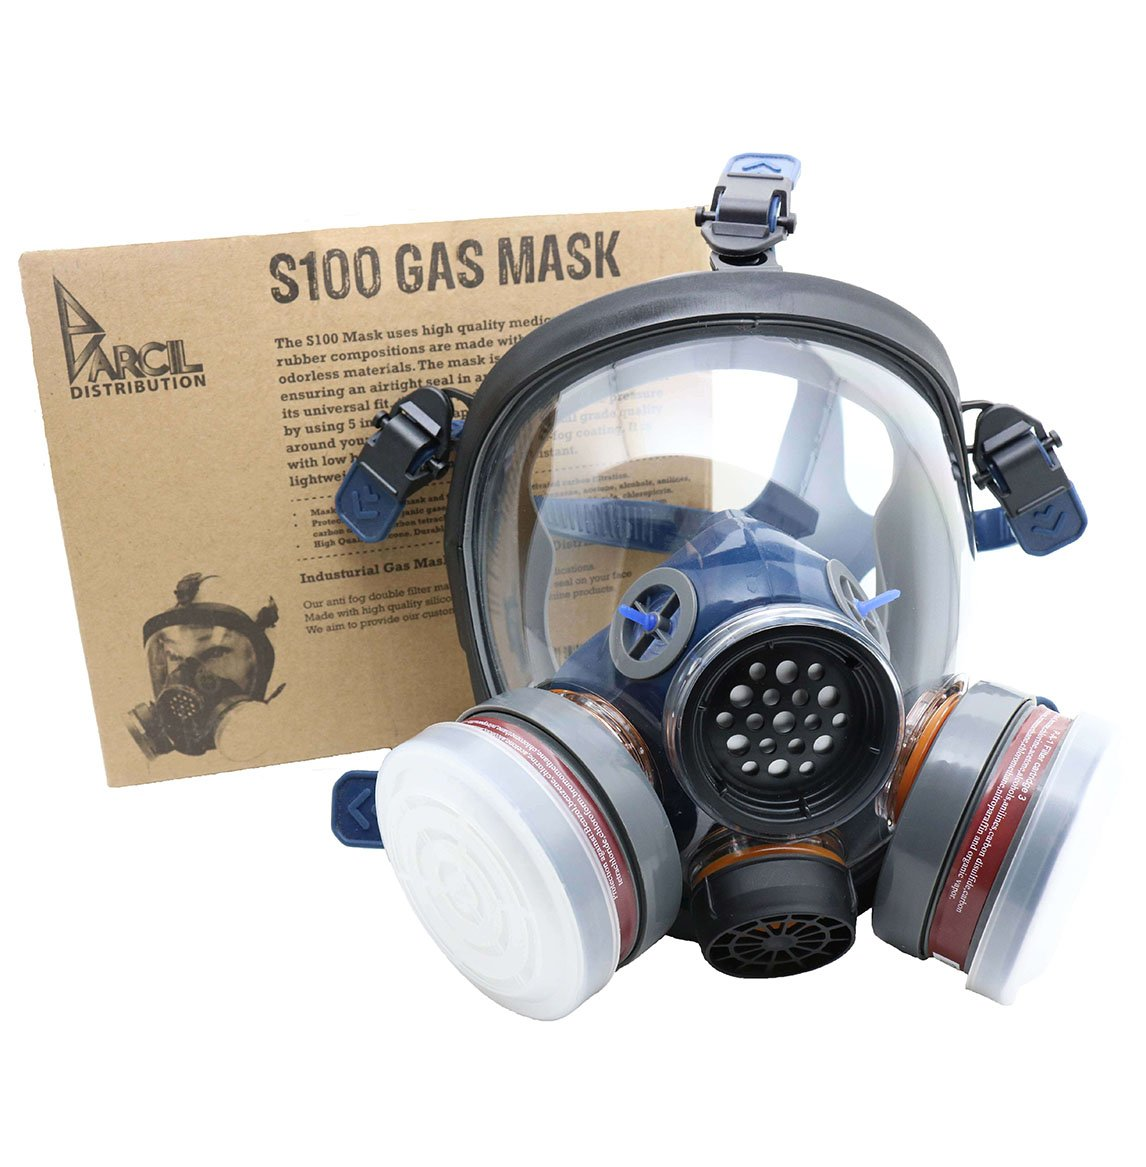 It's Been a Gas: 10 Best Gas Masks 2021 Has to Offer - The Prepper Journal